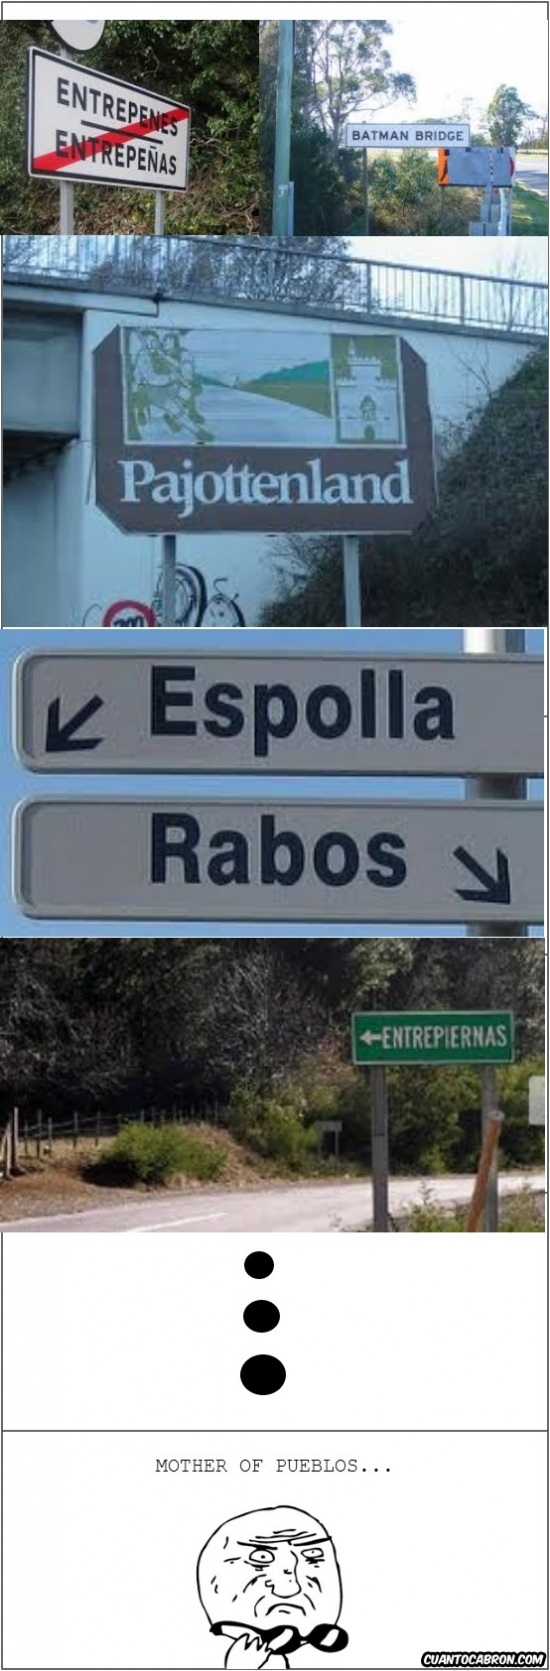 pueblos entrepenes -batman bridge - pajottenland - espolla - rabos - mother of pueblos